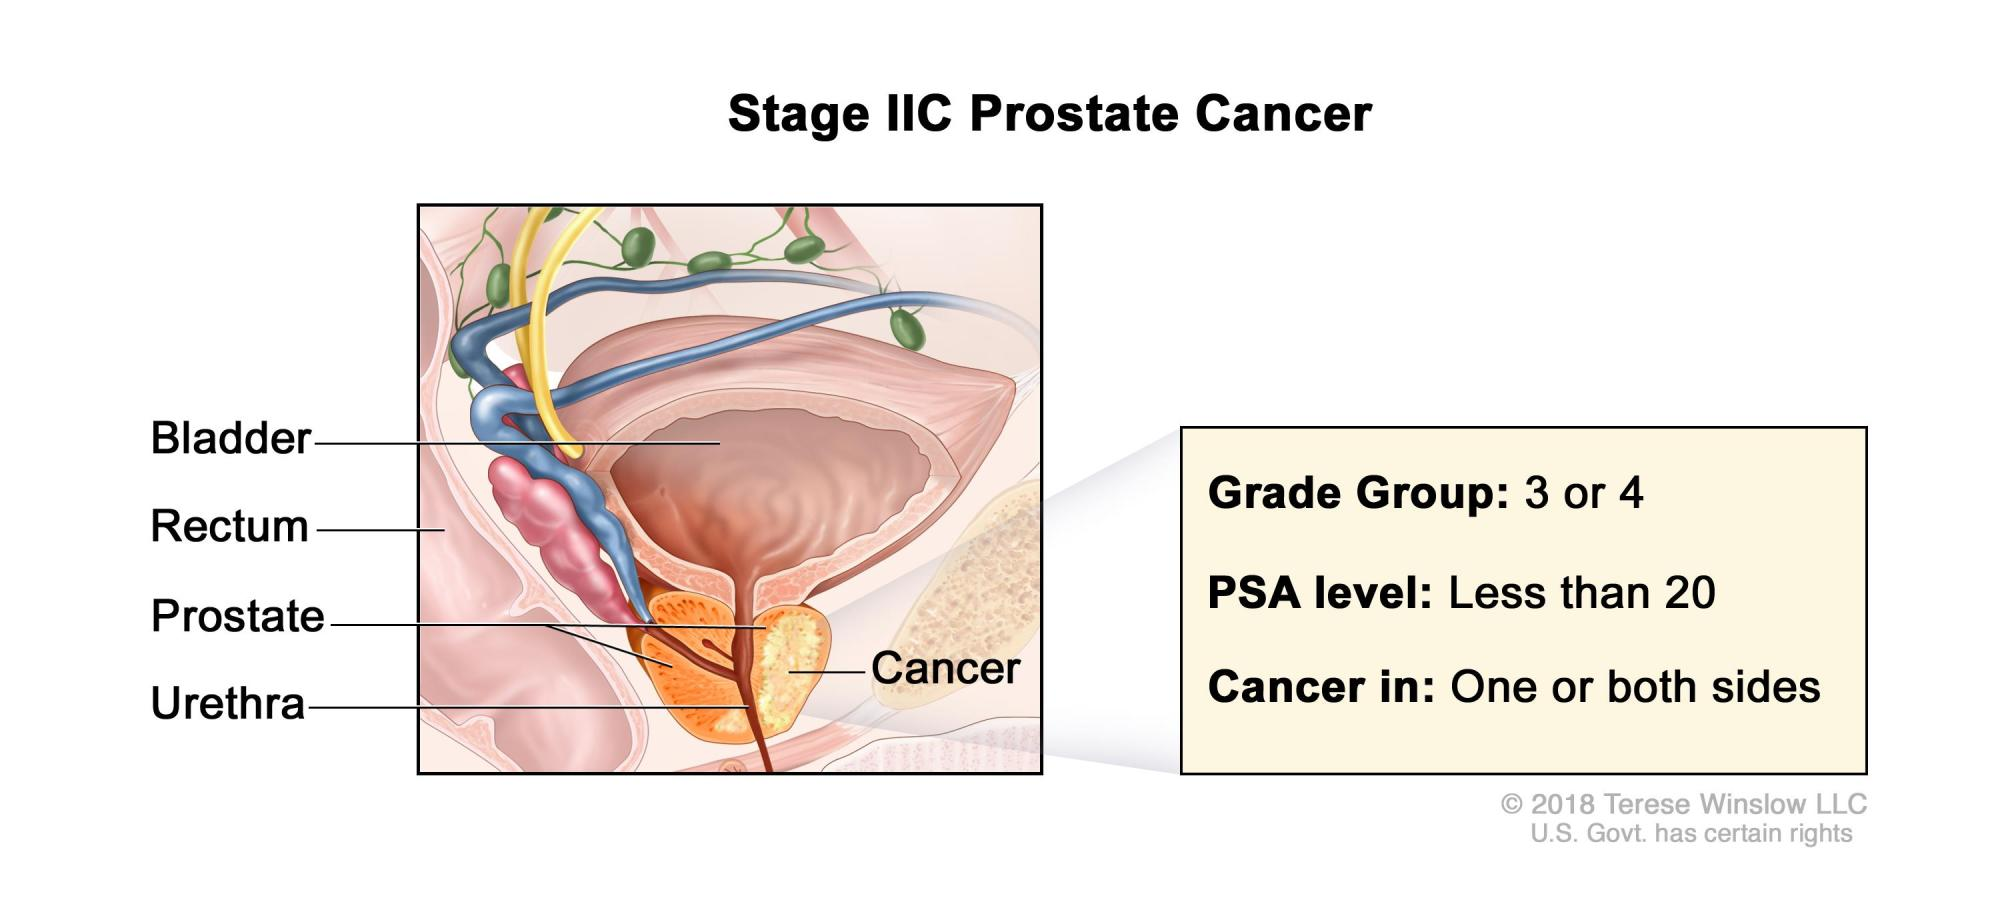 hight resolution of stage iic prostate cancer cancer is found in the prostate only cancer is found in one or both sides of the prostate the prostate specific antigen level